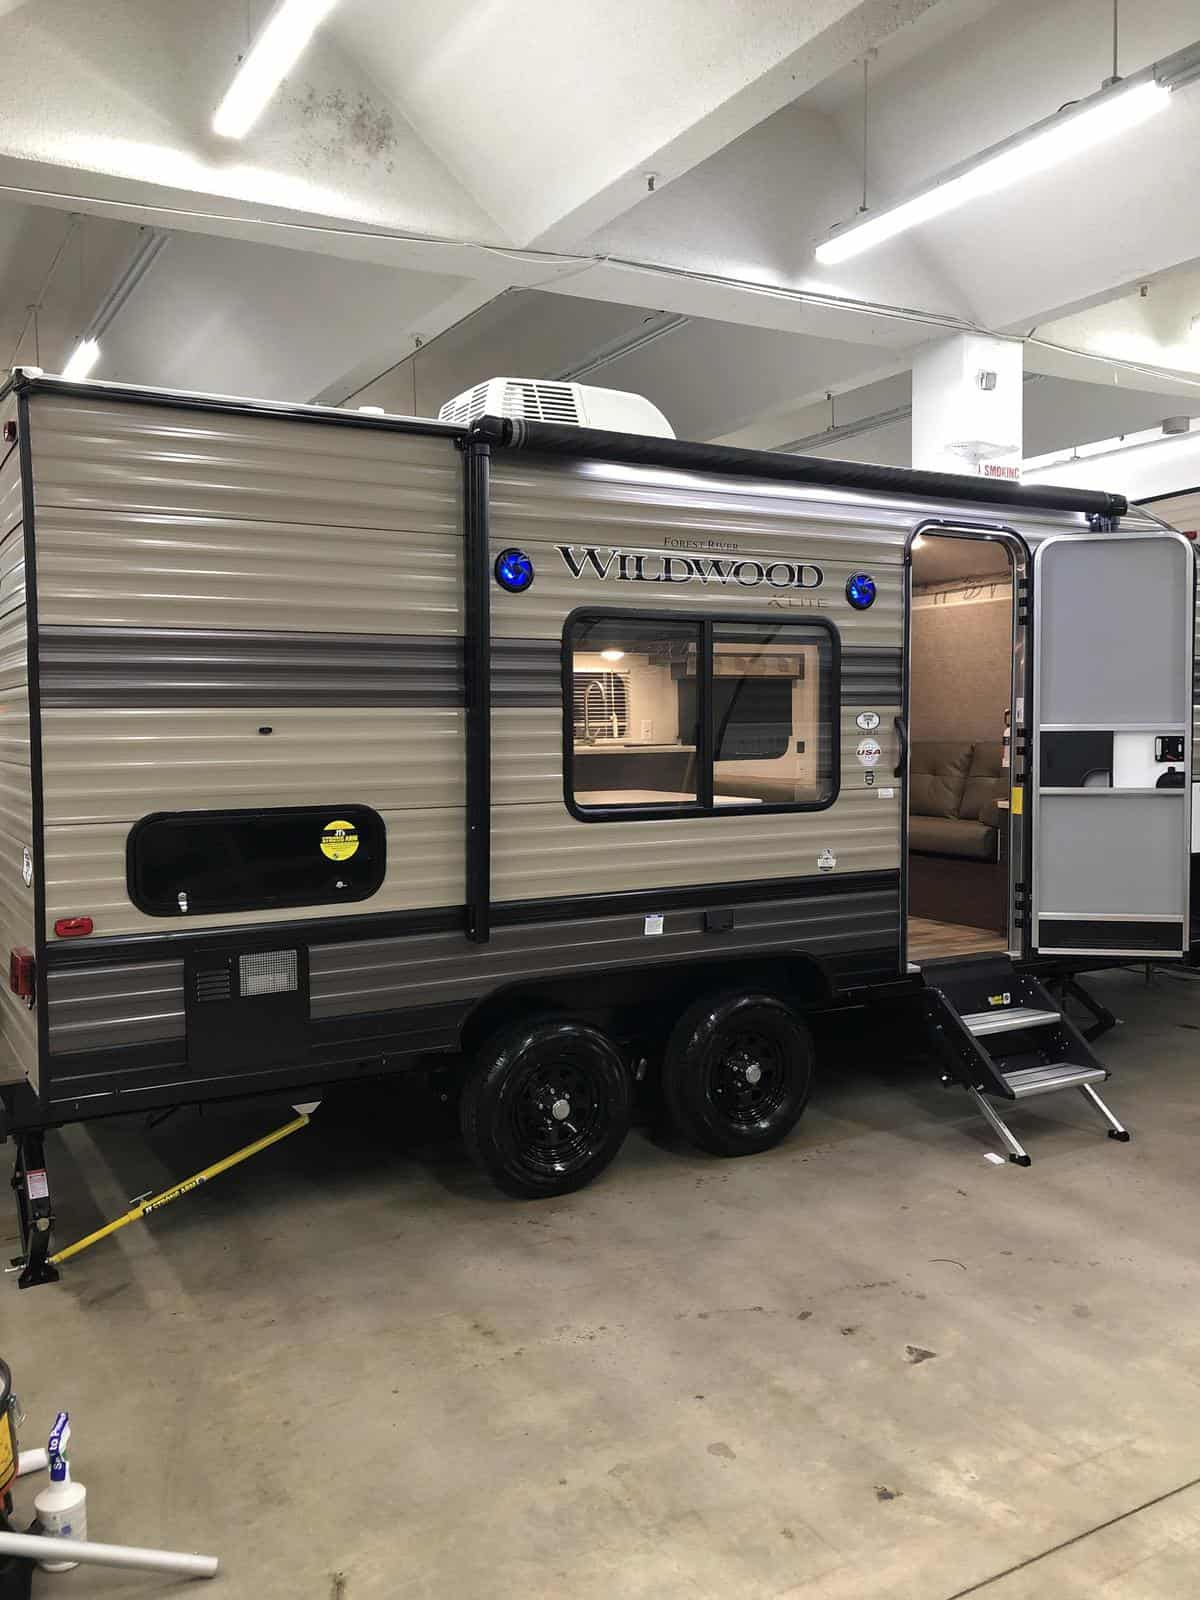 NEW 2019 Forest river Wildwood 171RBXL - Three Way Campers